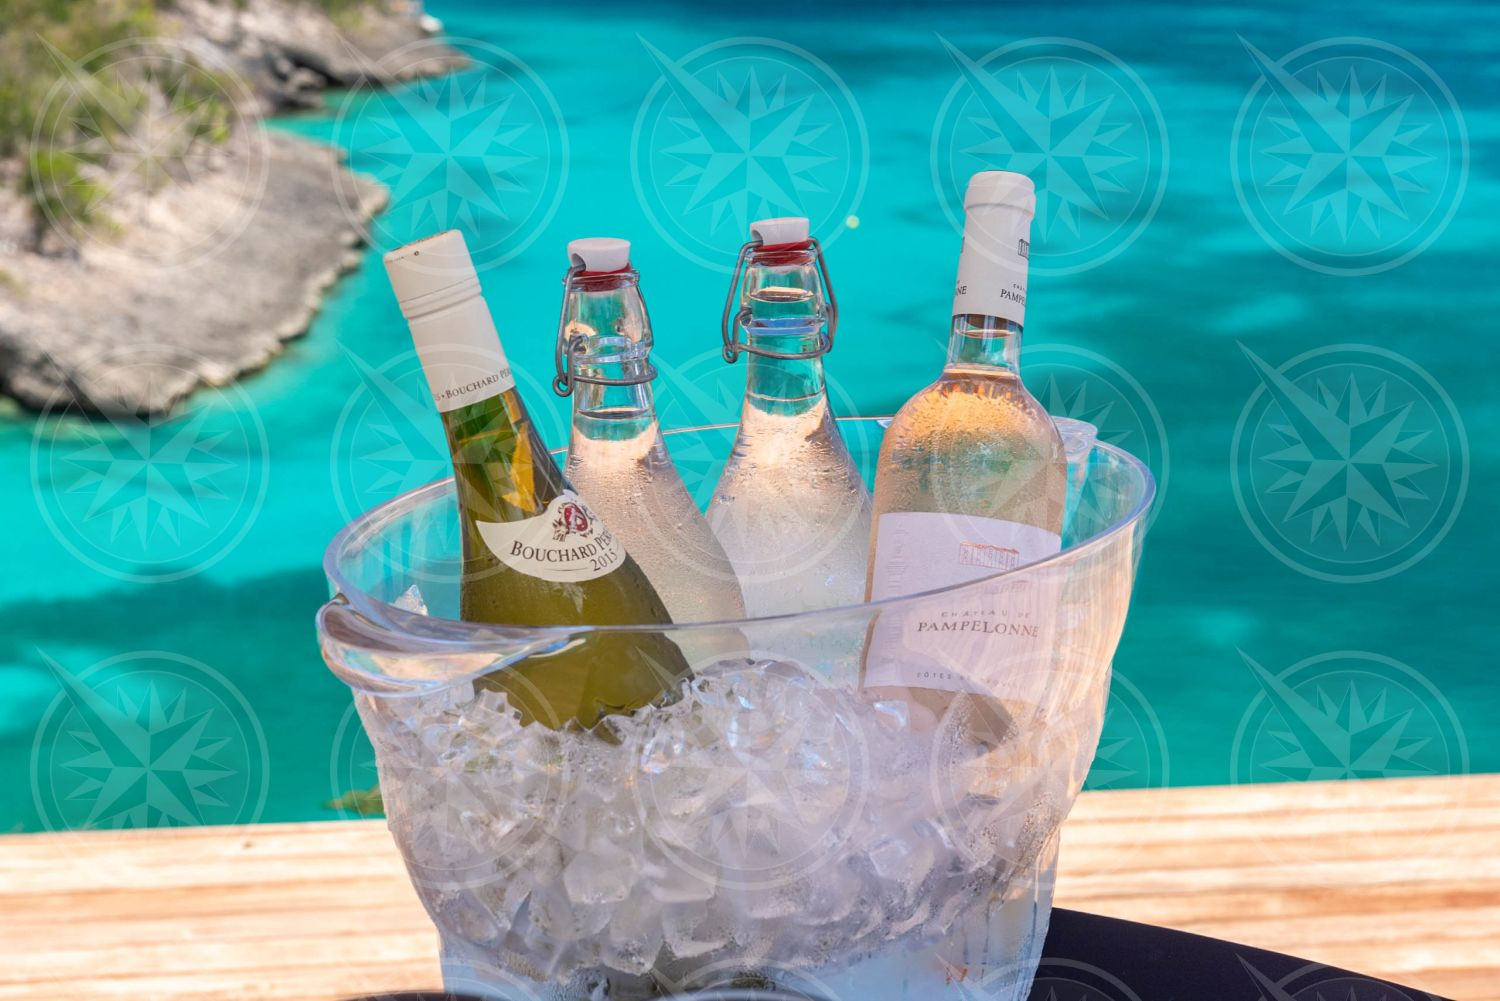 Wine in ice bucket